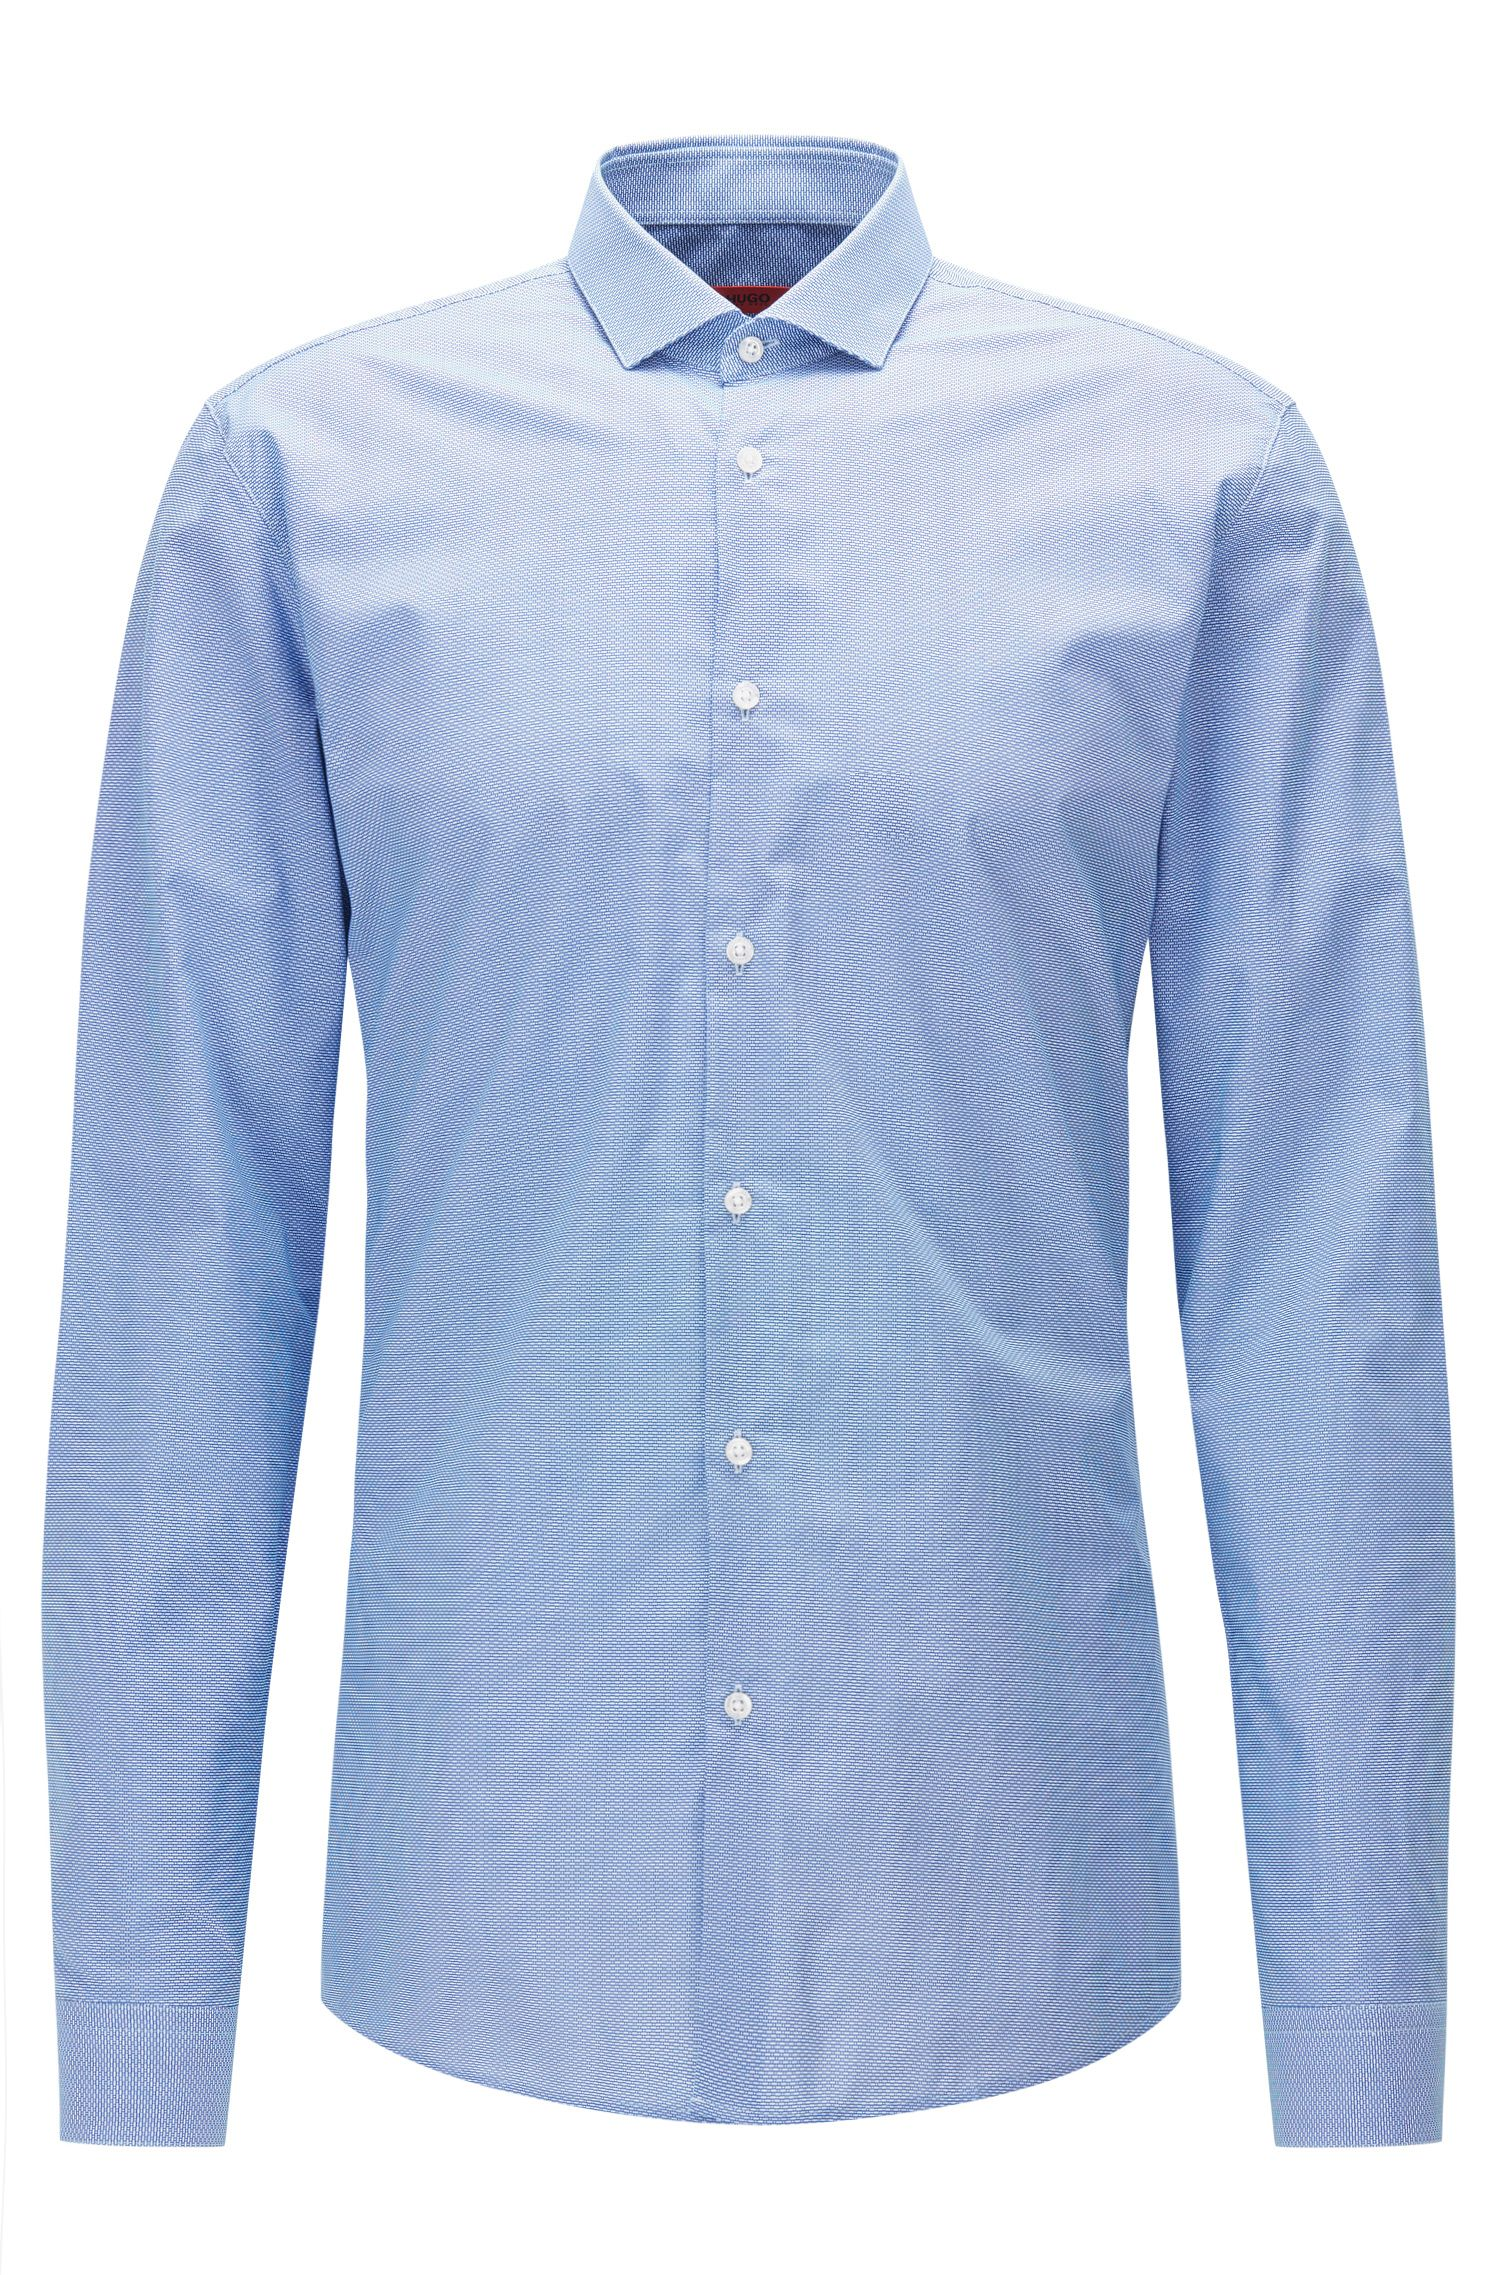 Slim-fit shirt in micro patterned cotton poplin